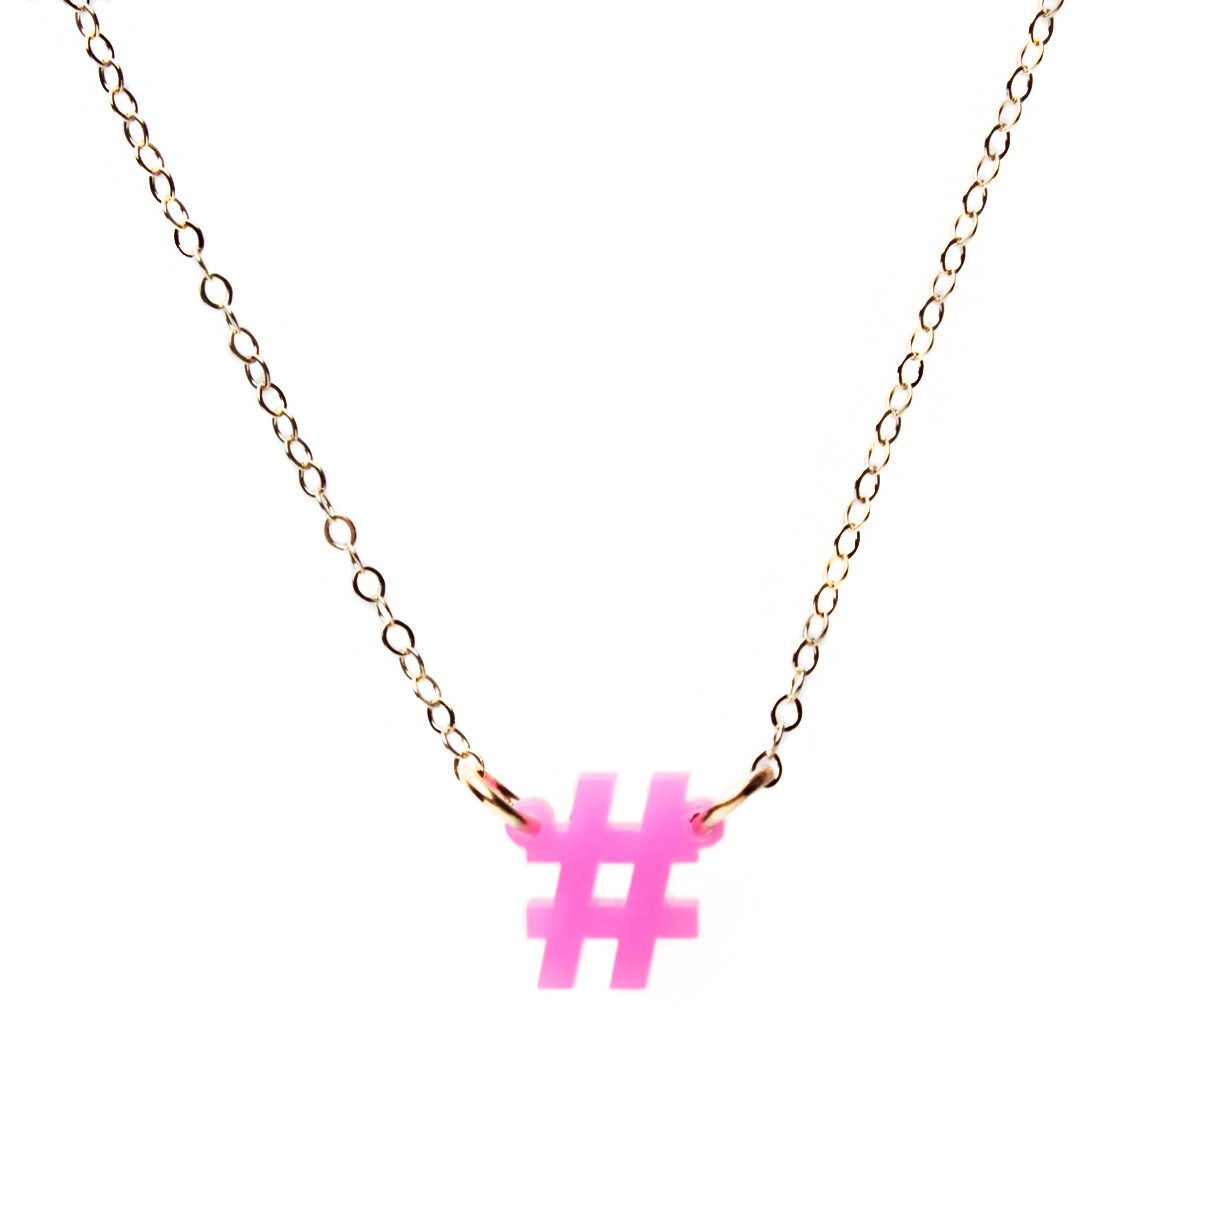 The mini hashtag necklace: Wear your love of social media around your neck